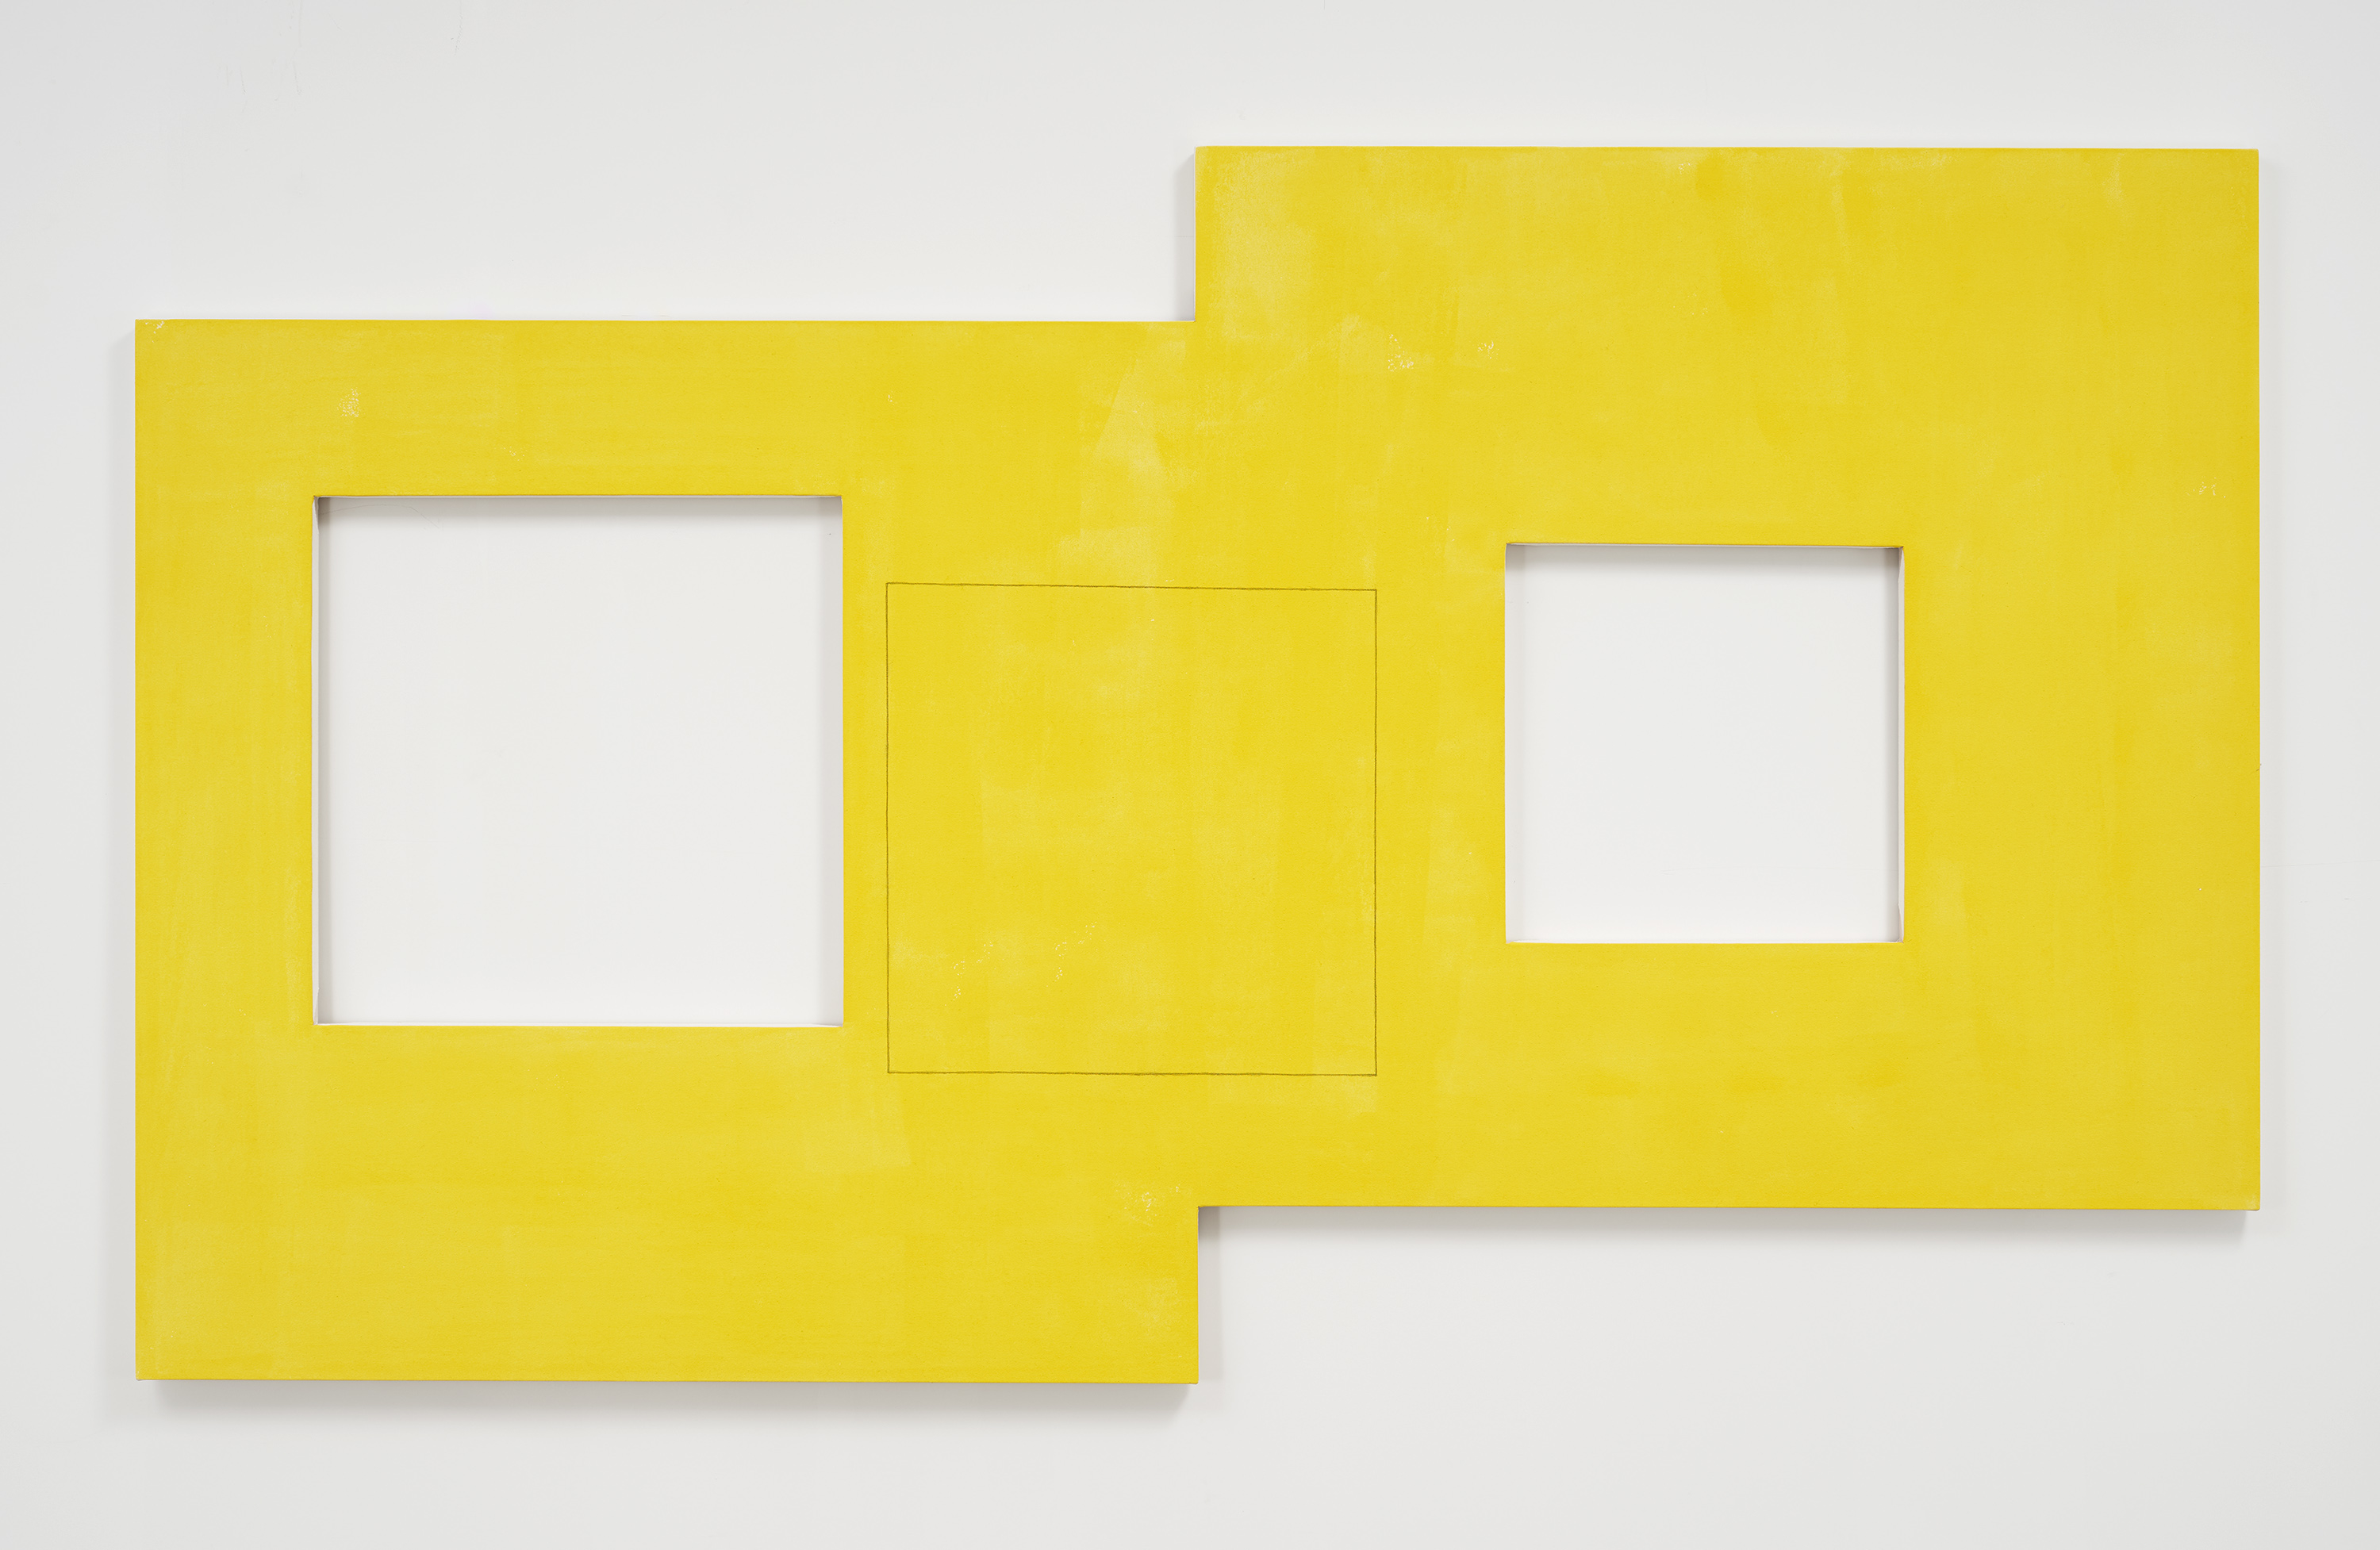 Robert Mangold 3 Squares Within a Double Square II, 2017 © 2020 Robert Mangold / Artists Rights Society (ARS), New York